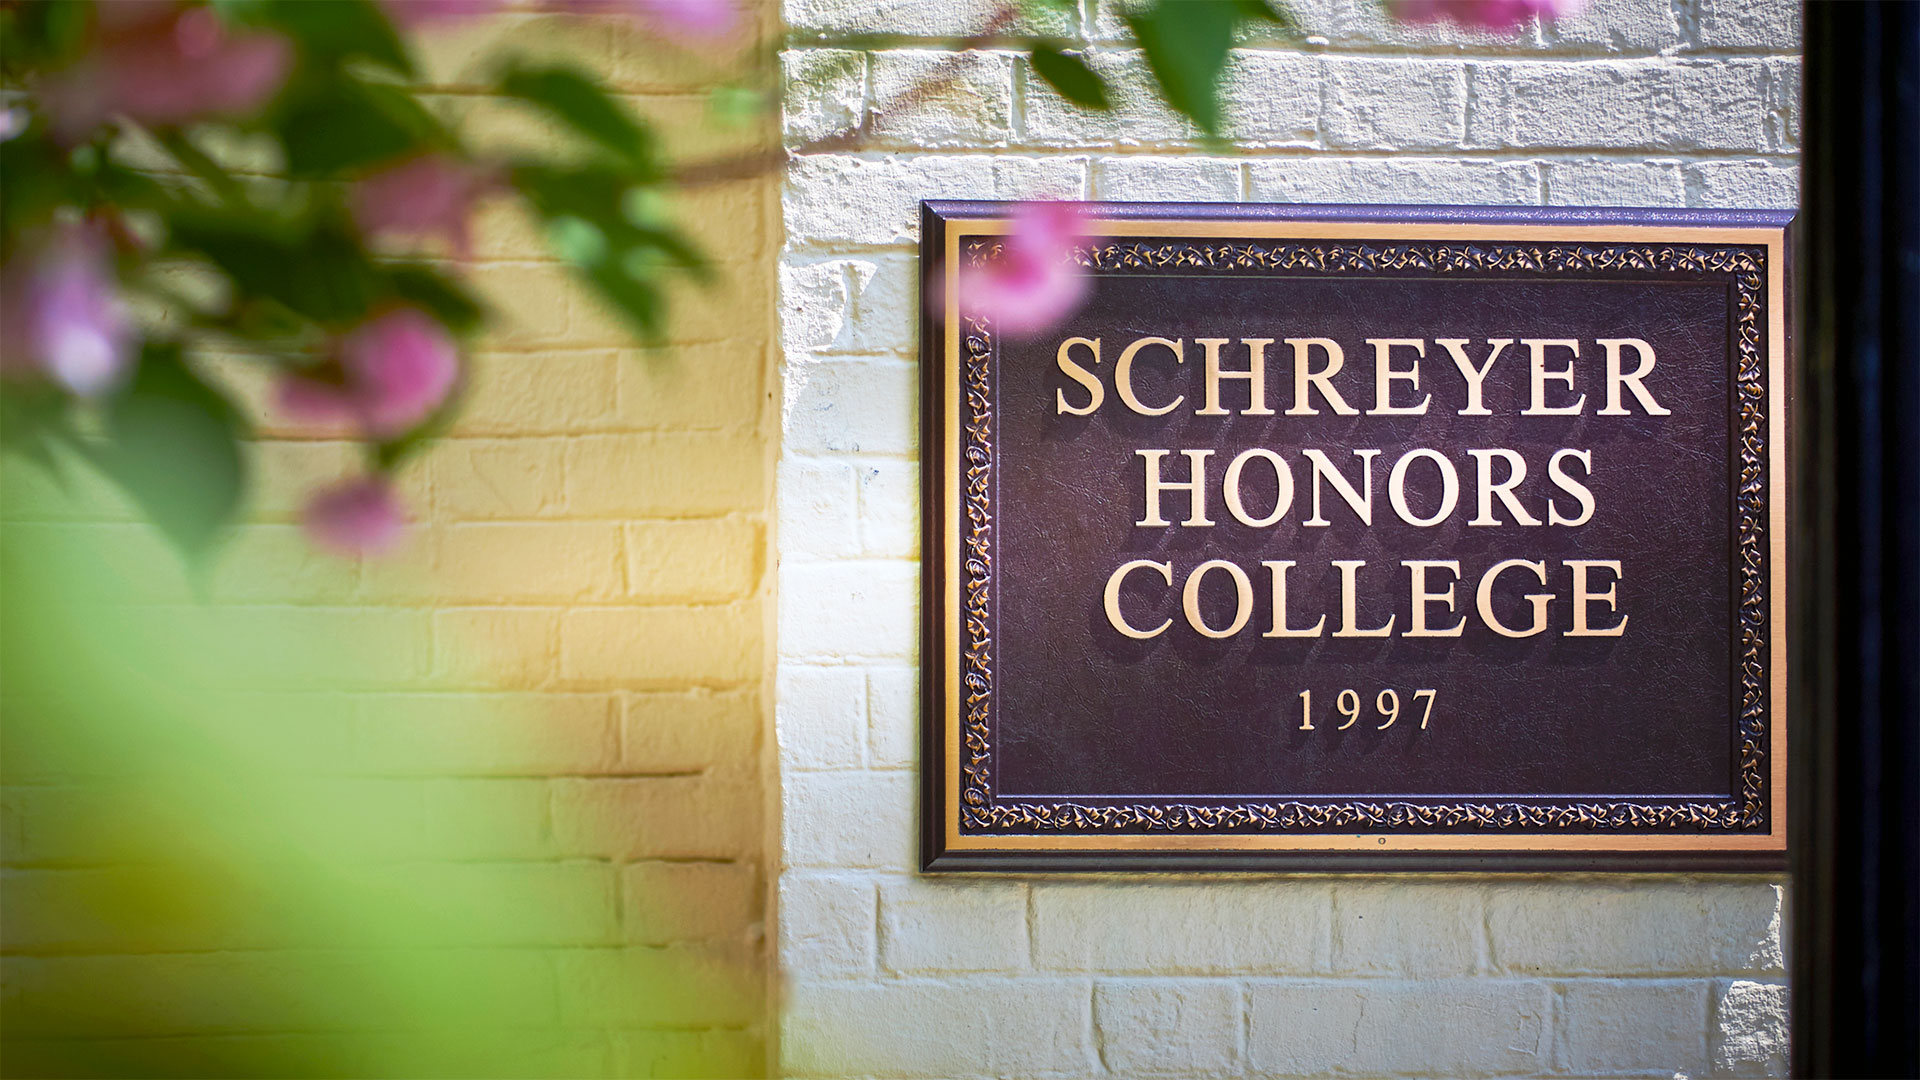 Schreyer Honors College sign